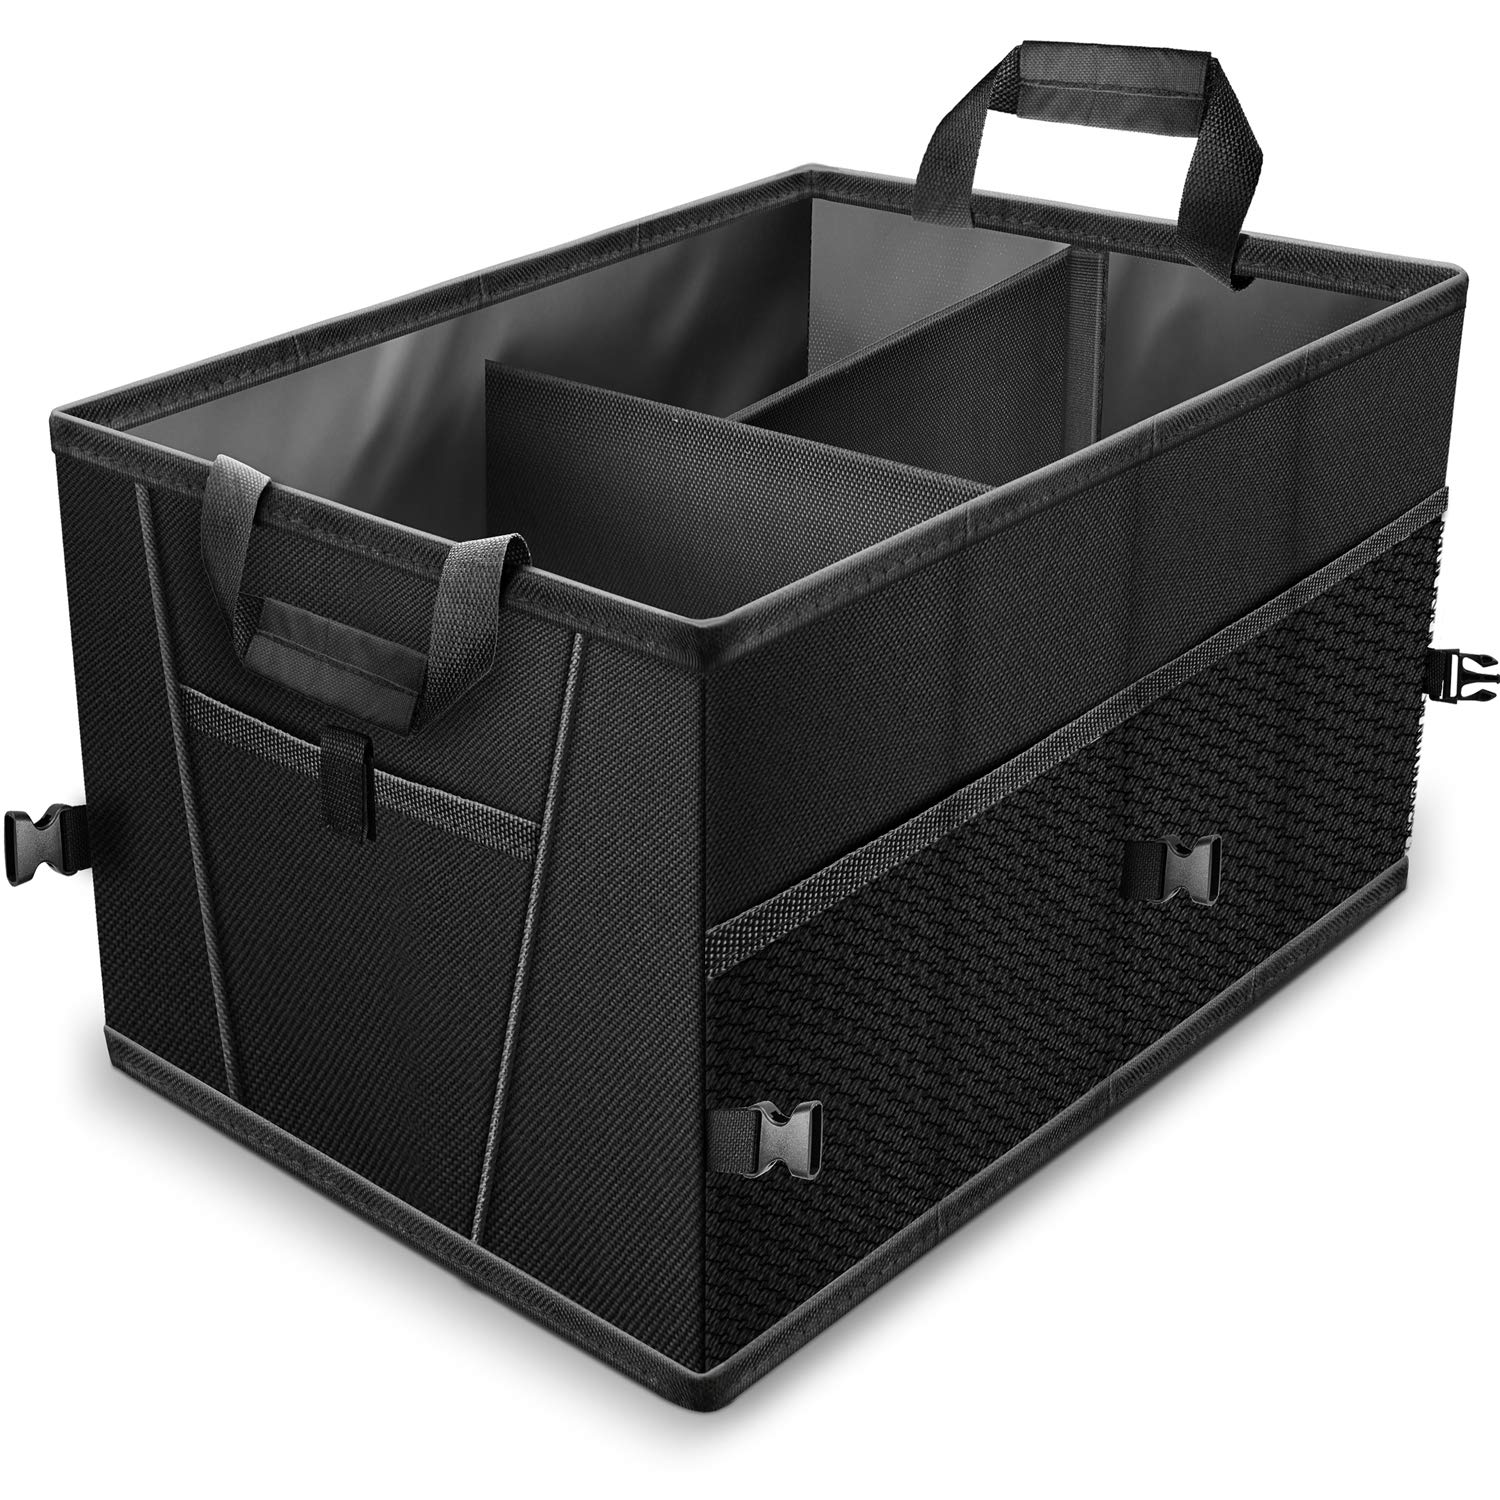 Trunk Organizer for Car SUV Truck Van Storage Organizers Best for Auto Accessories in Bed Interior, Collapsible Vehicle Caddy Large Box Tote Compartment Heavy Duty for Grocery, Tools or Boots by Motorup America